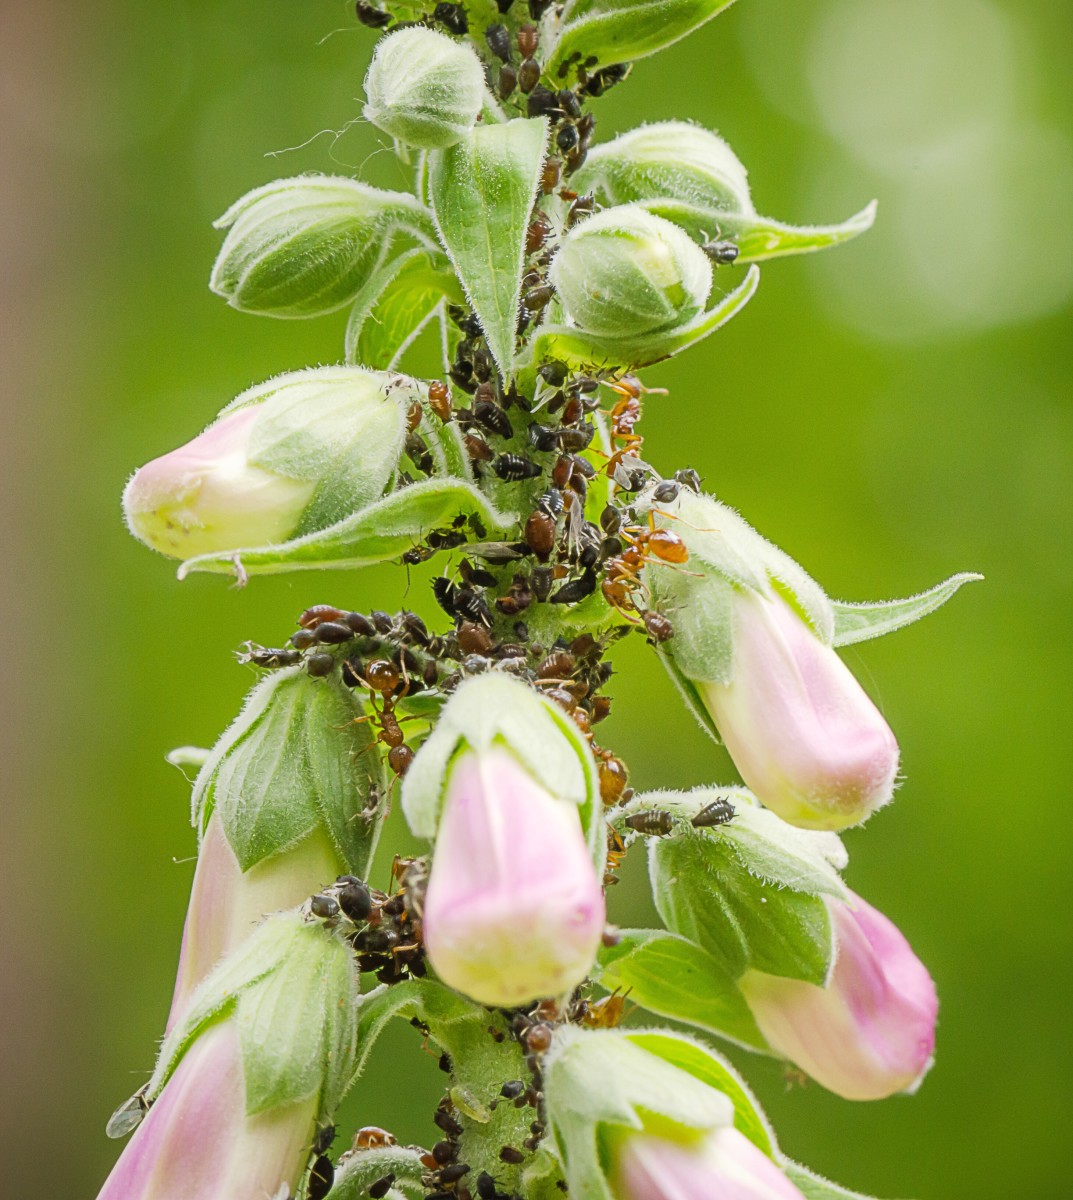 Ants and aphids on a foxglove